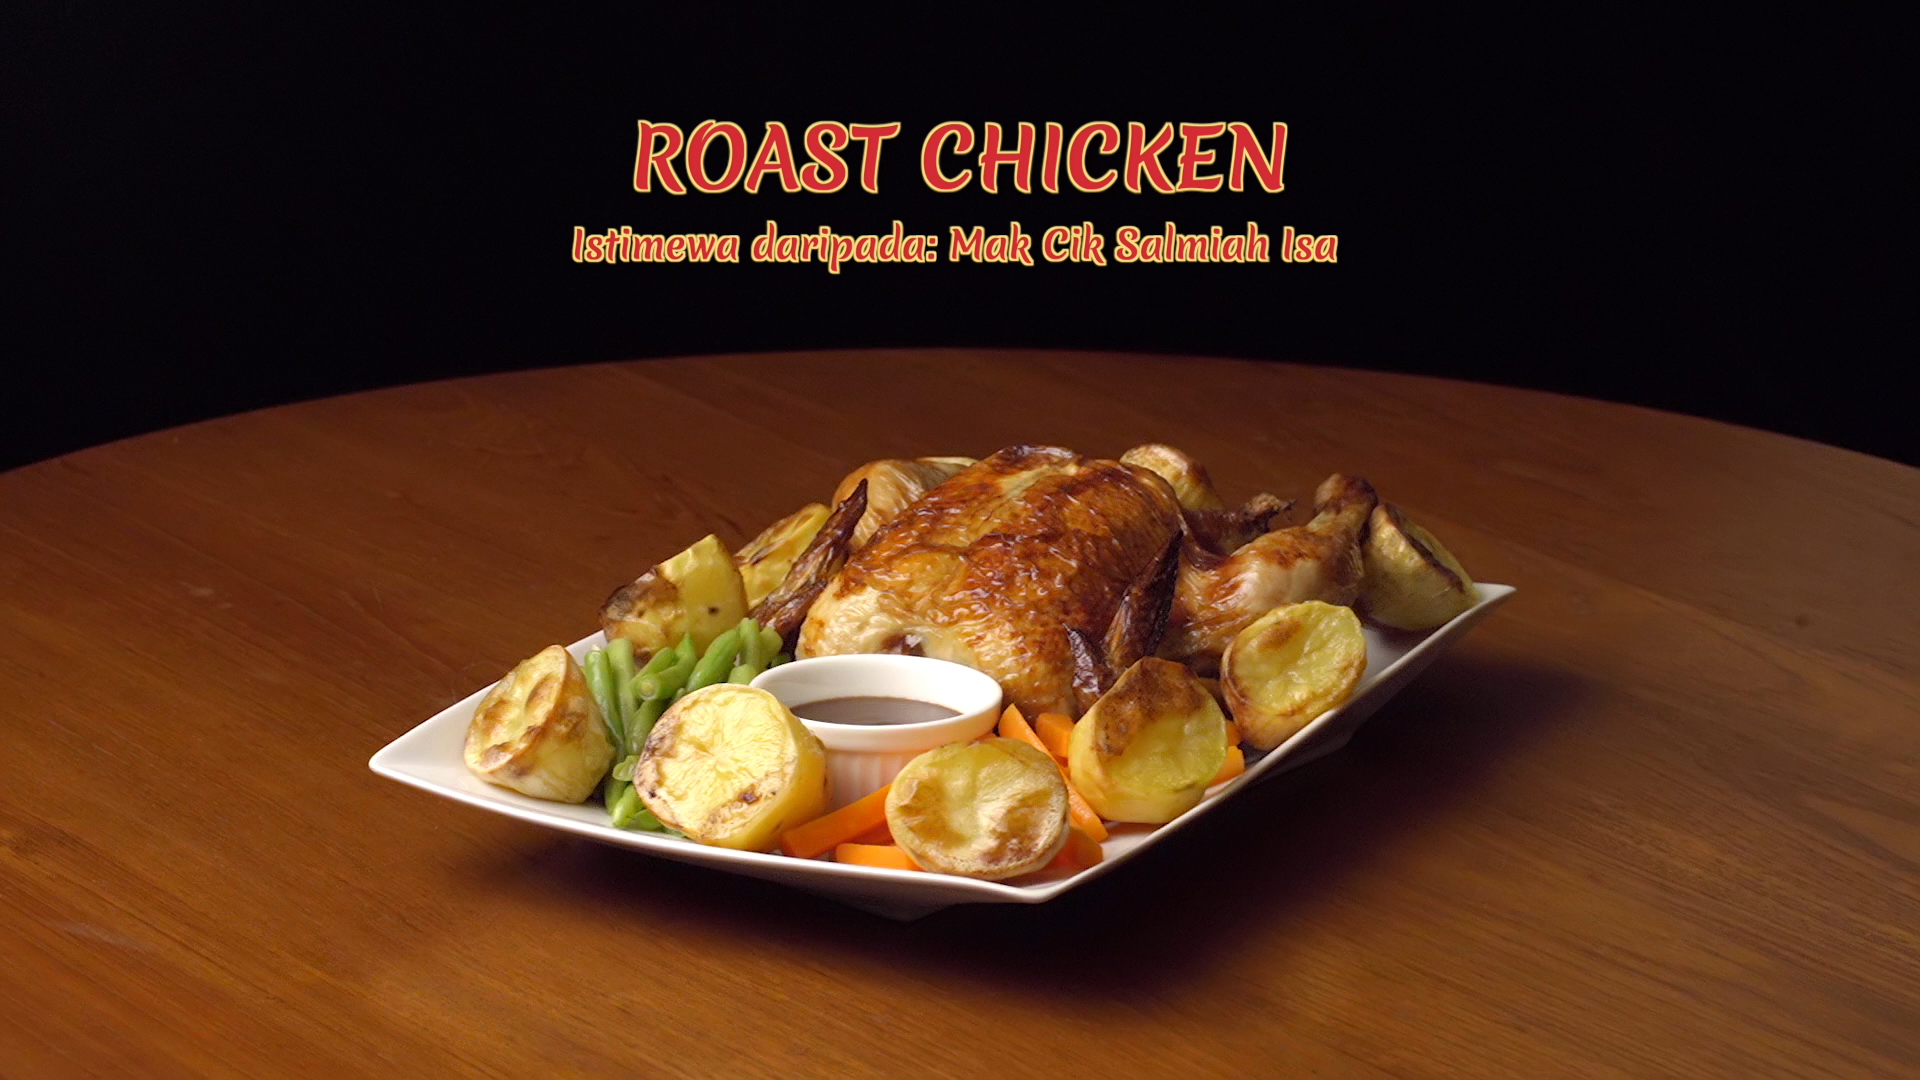 Roast-Chicken-1920-x-1080